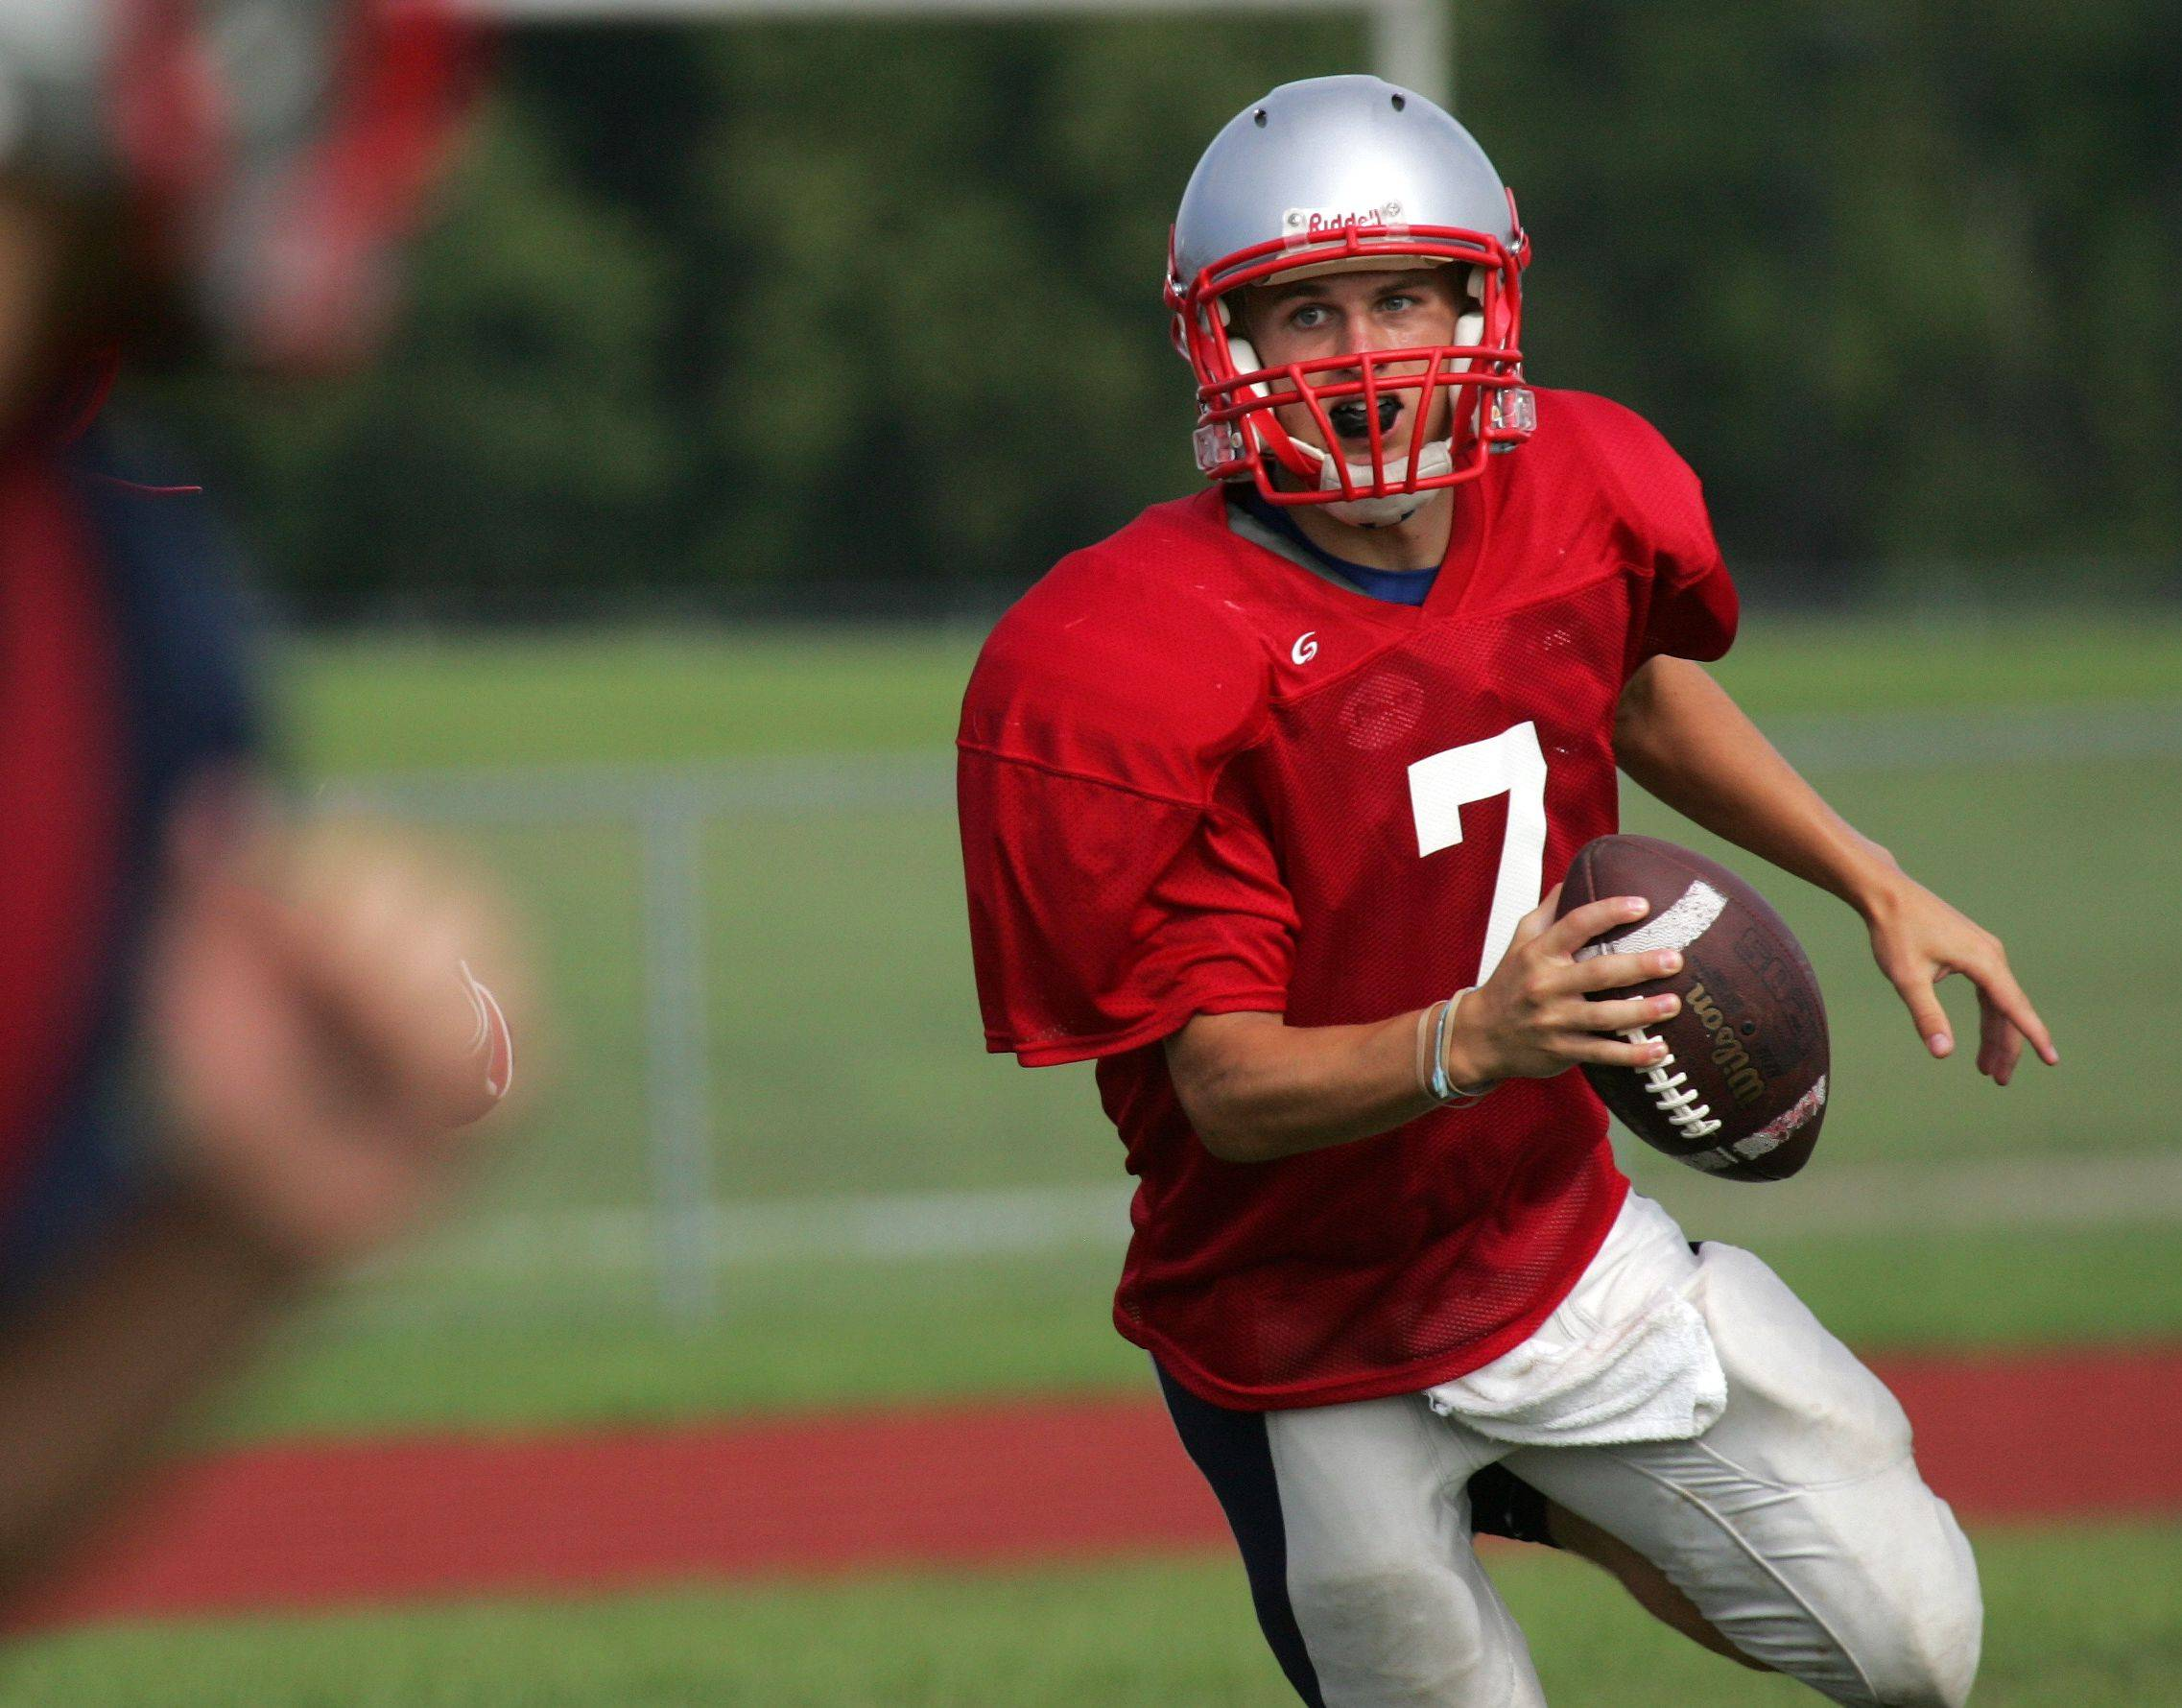 Quarterback Zach Gross will be at the controls for South Elgin this fall.